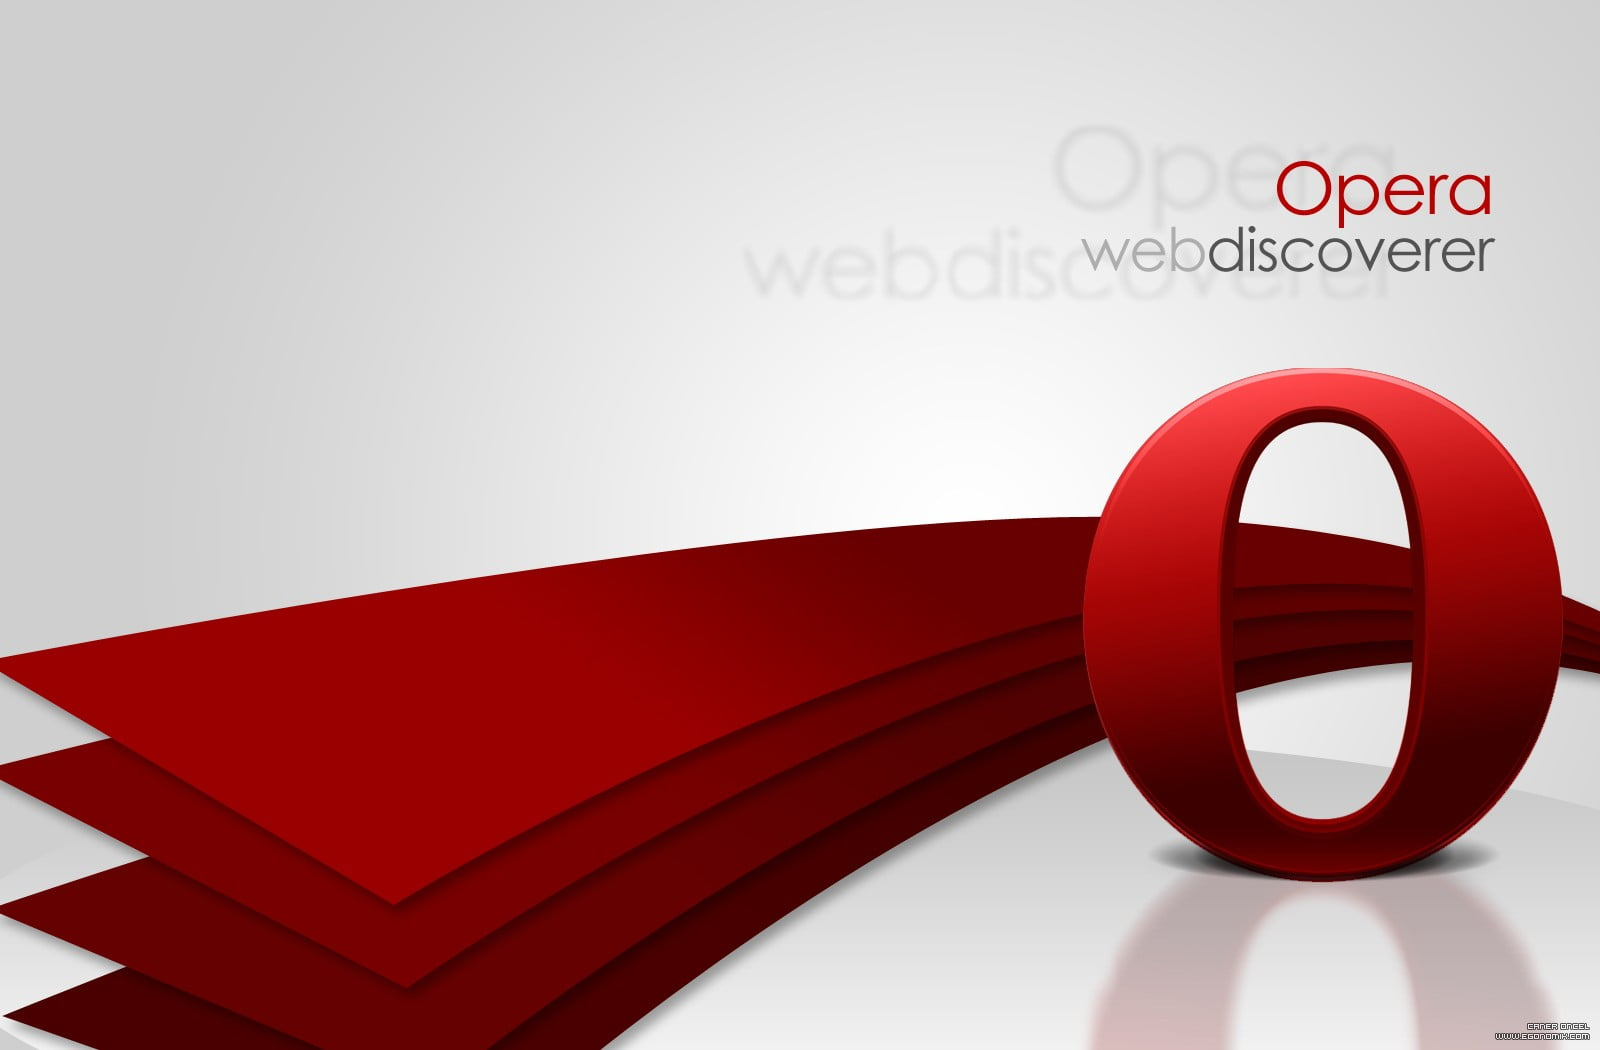 Opera enables .crypto domains for 80M users